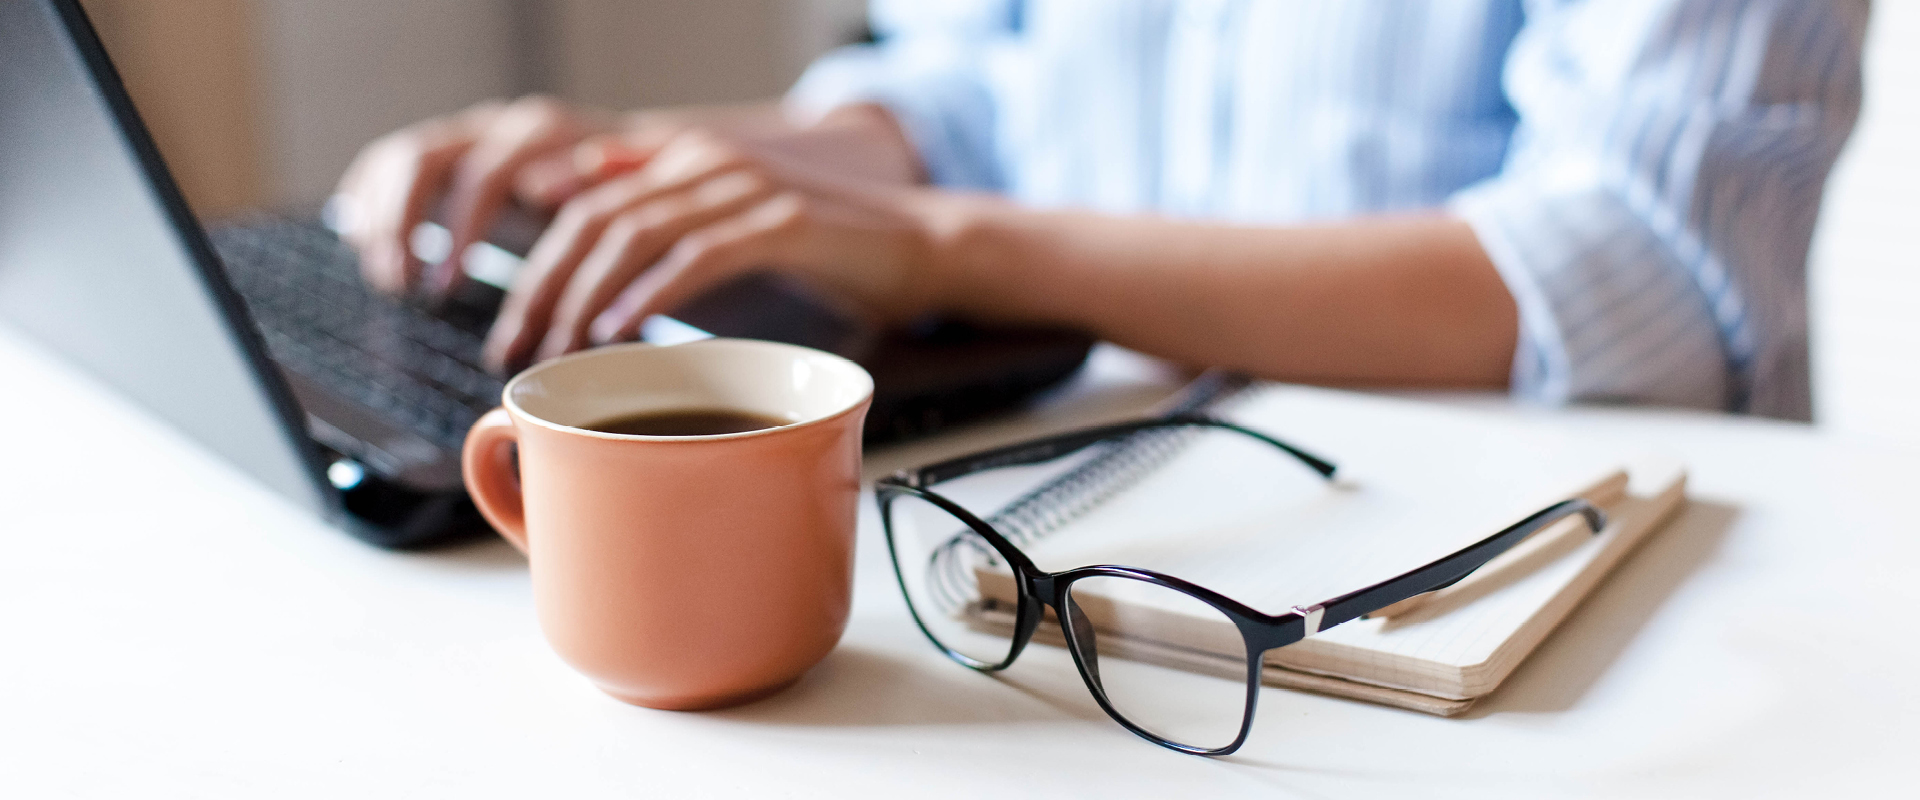 Taking care of business from your [home] office